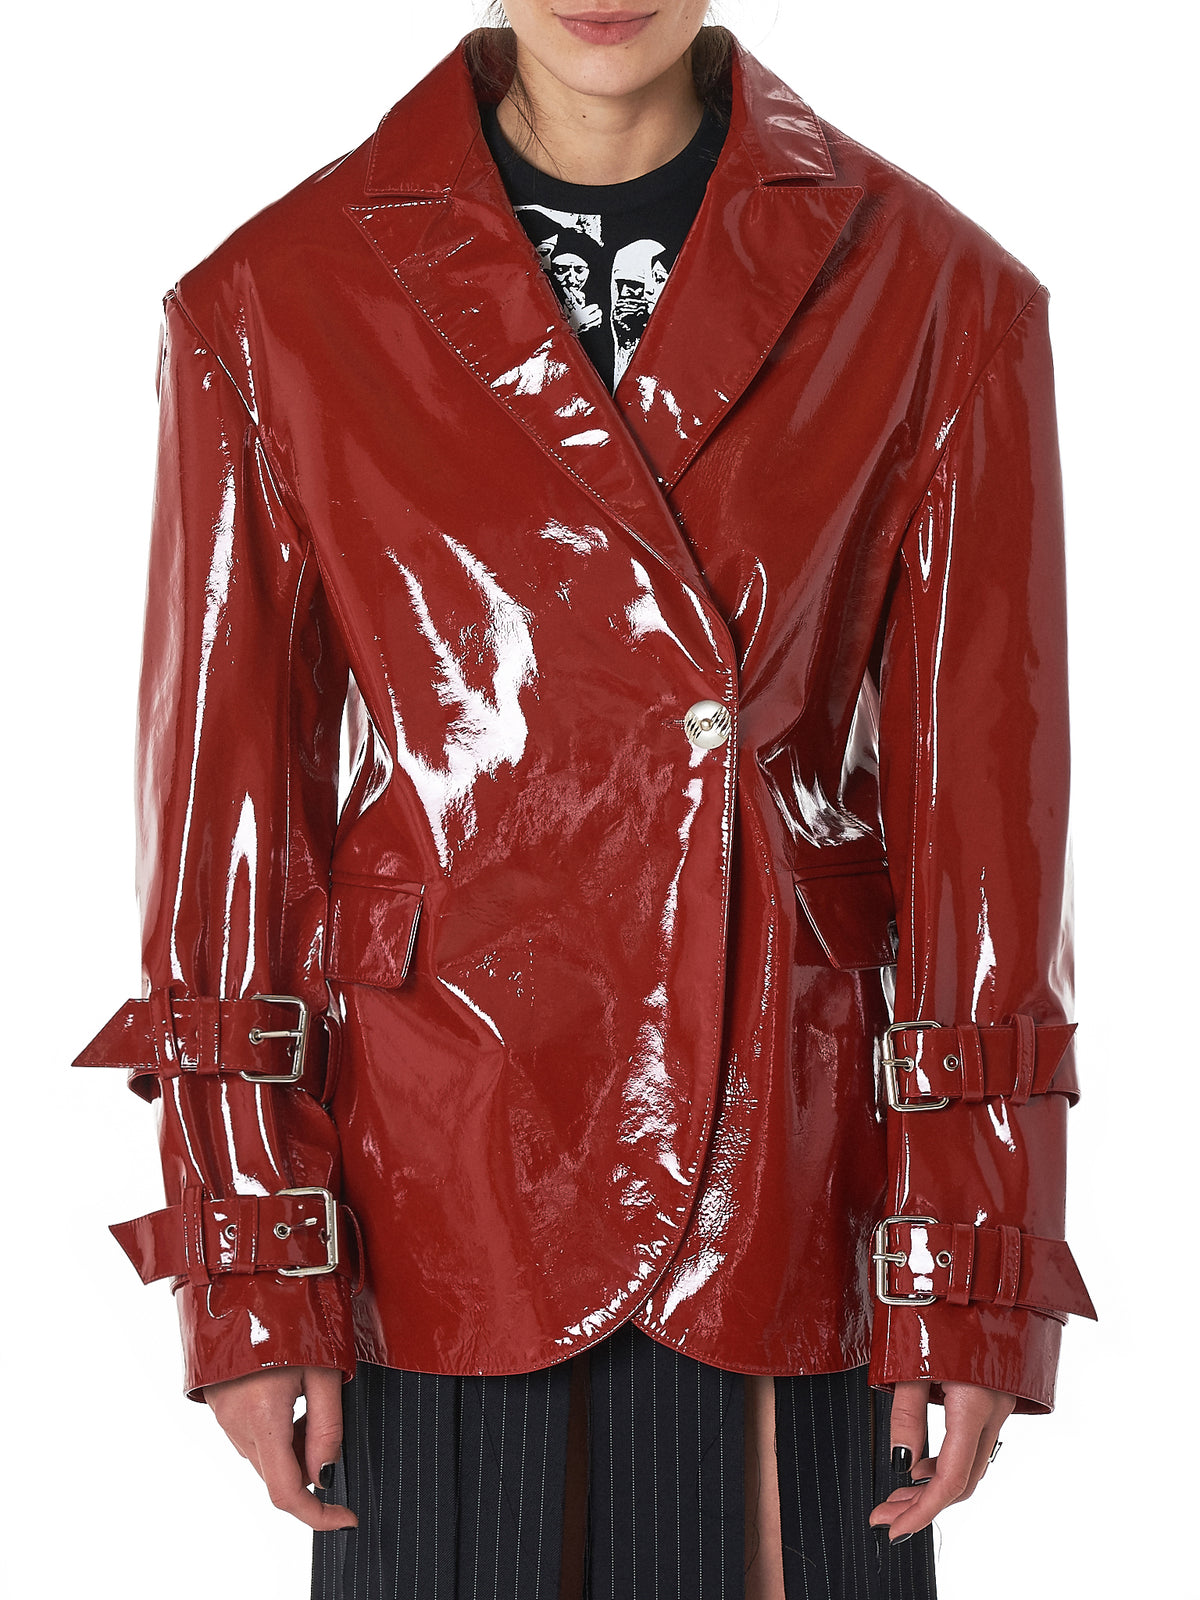 Dilara Findikoglu Leather Jacket - Hlorenzo Front